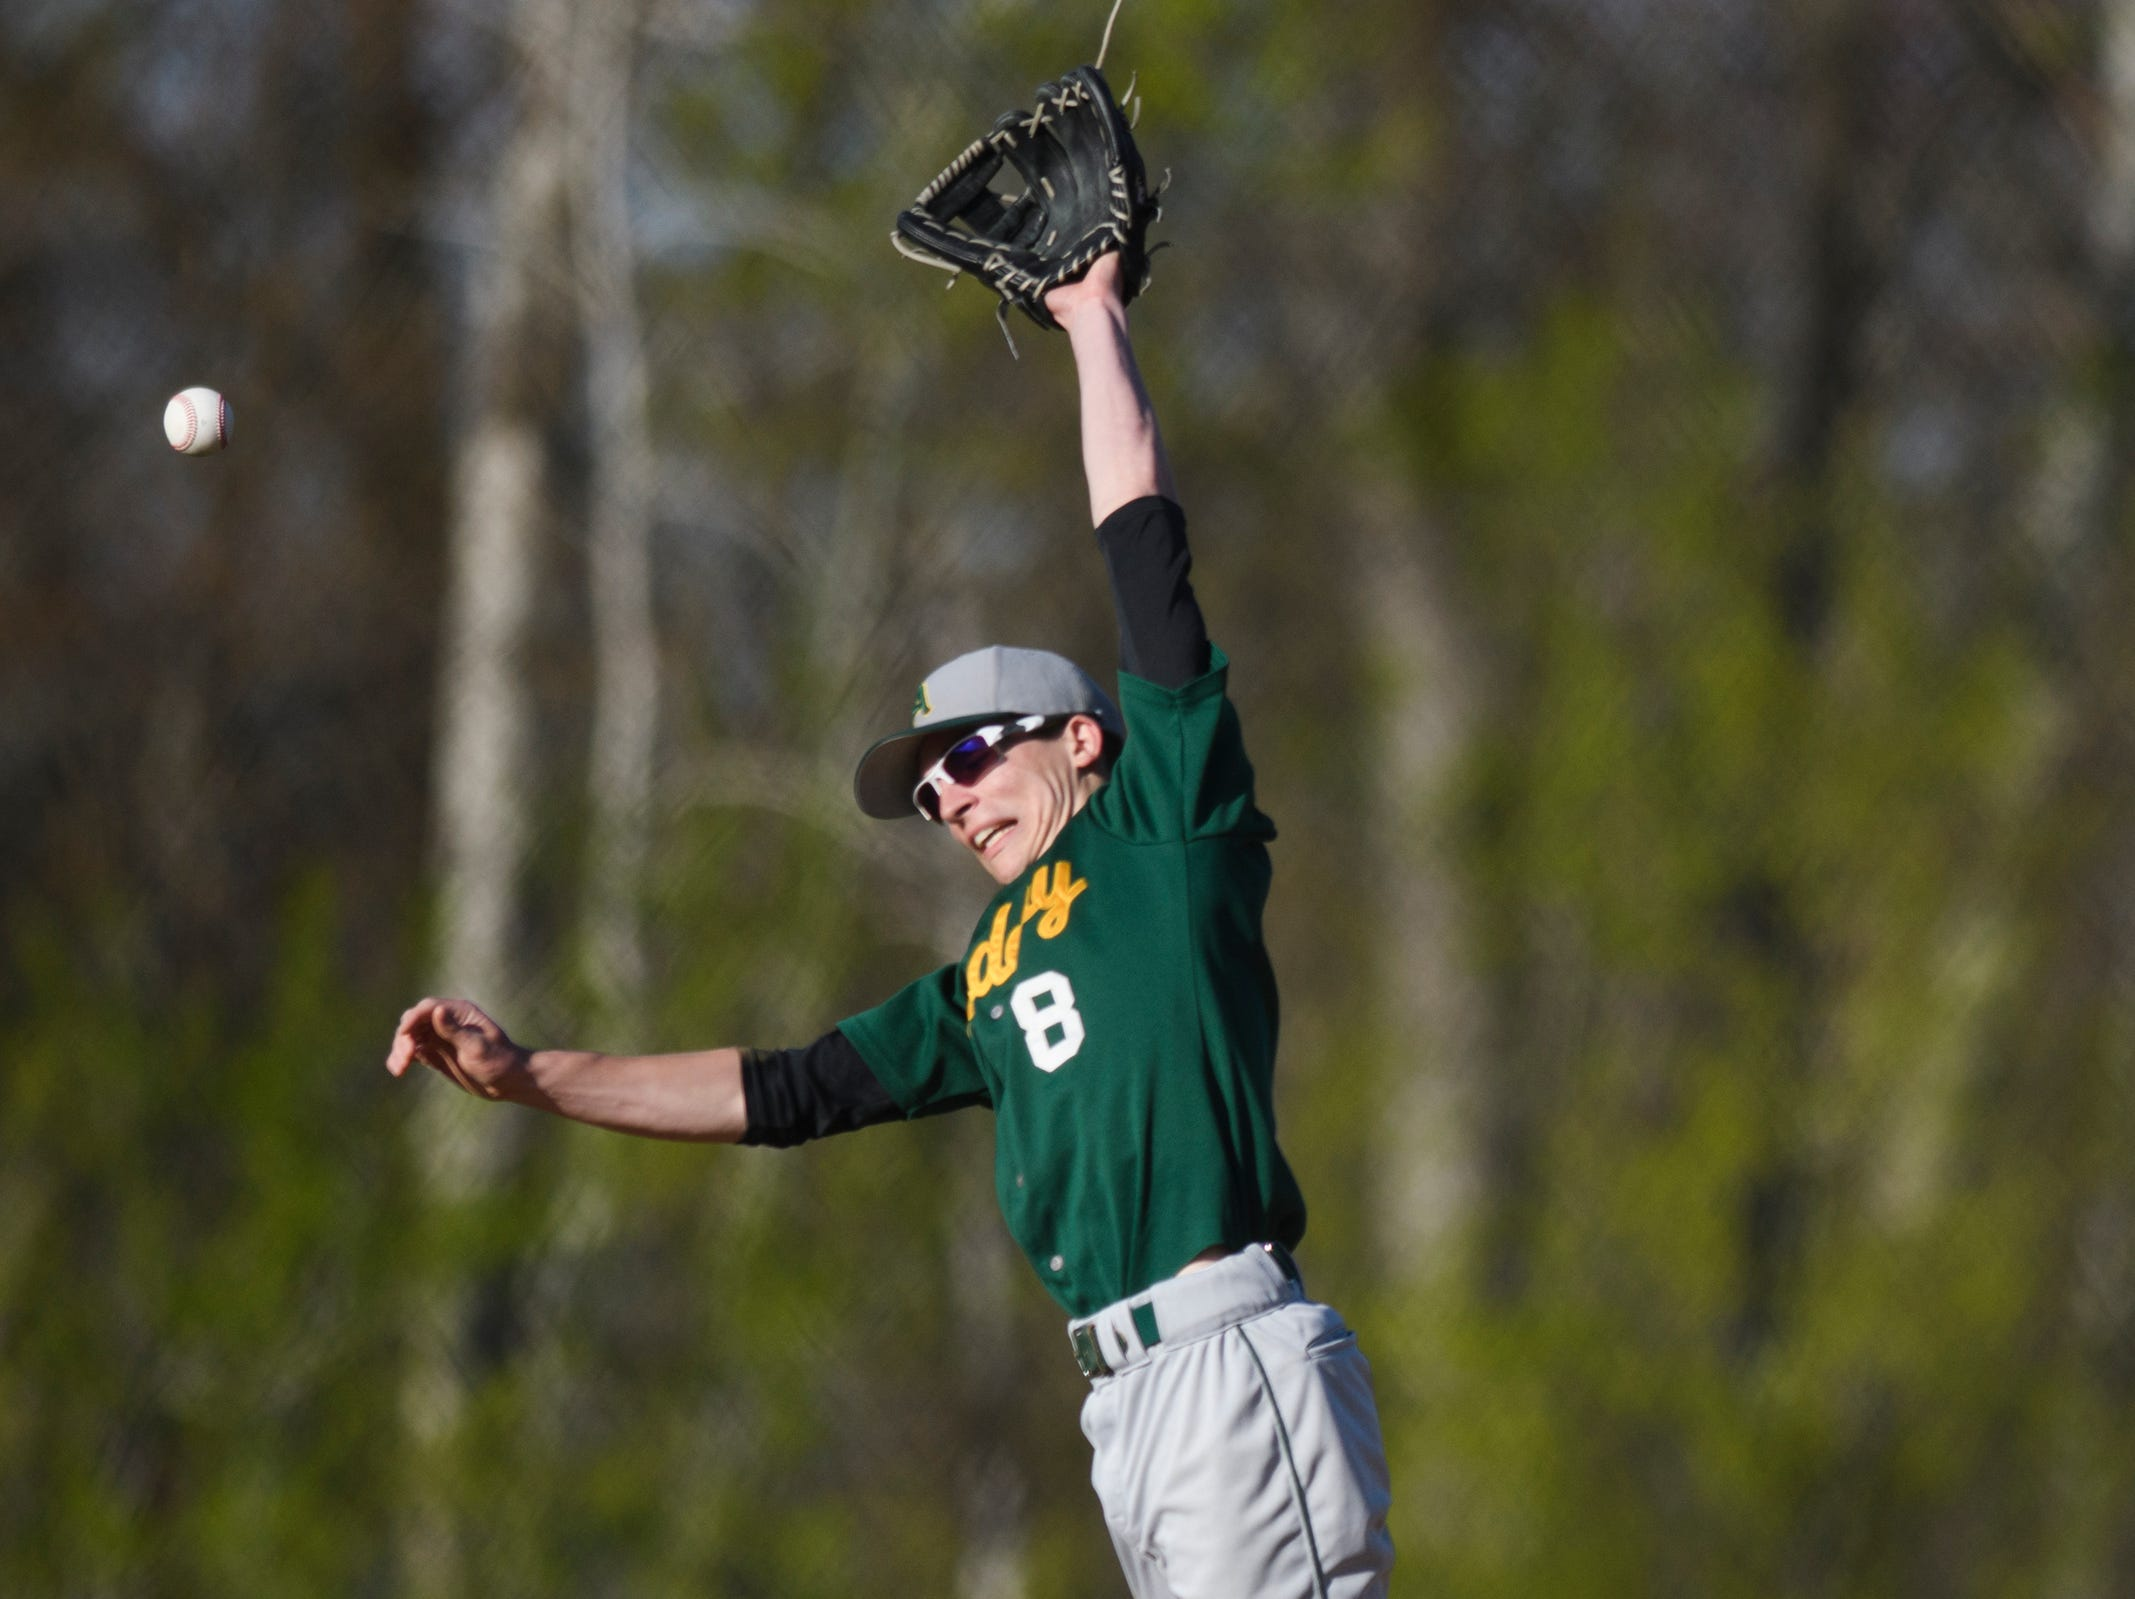 BFA's Jacob Beware (8) leaps to try and catch the ball during the high school baseball game between BFA St. Albans and Rice at Rice Memorial High School on Wednesday afternoon May 8, 2019 in South Burlington, Vermont.